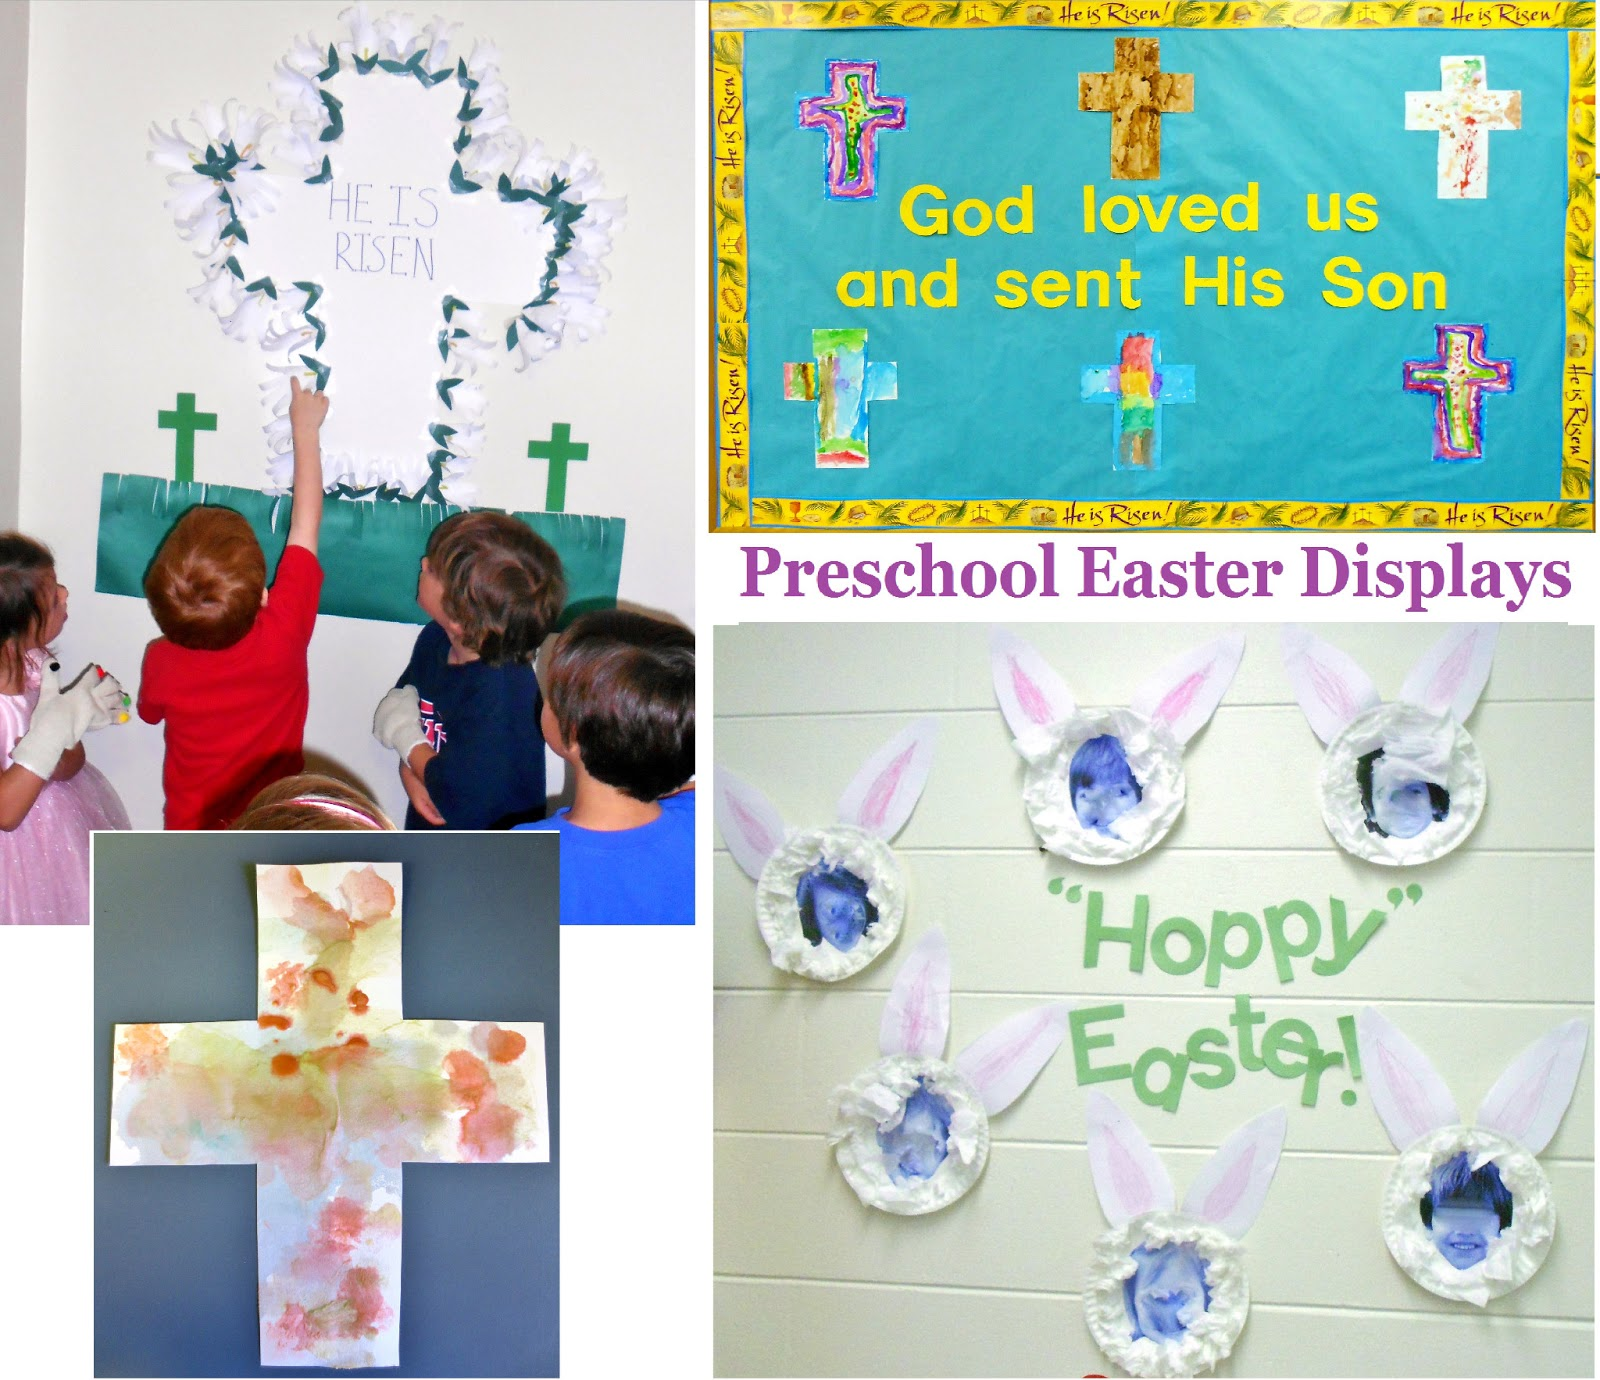 Princesses, Pies, & Preschool Pizzazz: Easter Displays for Children